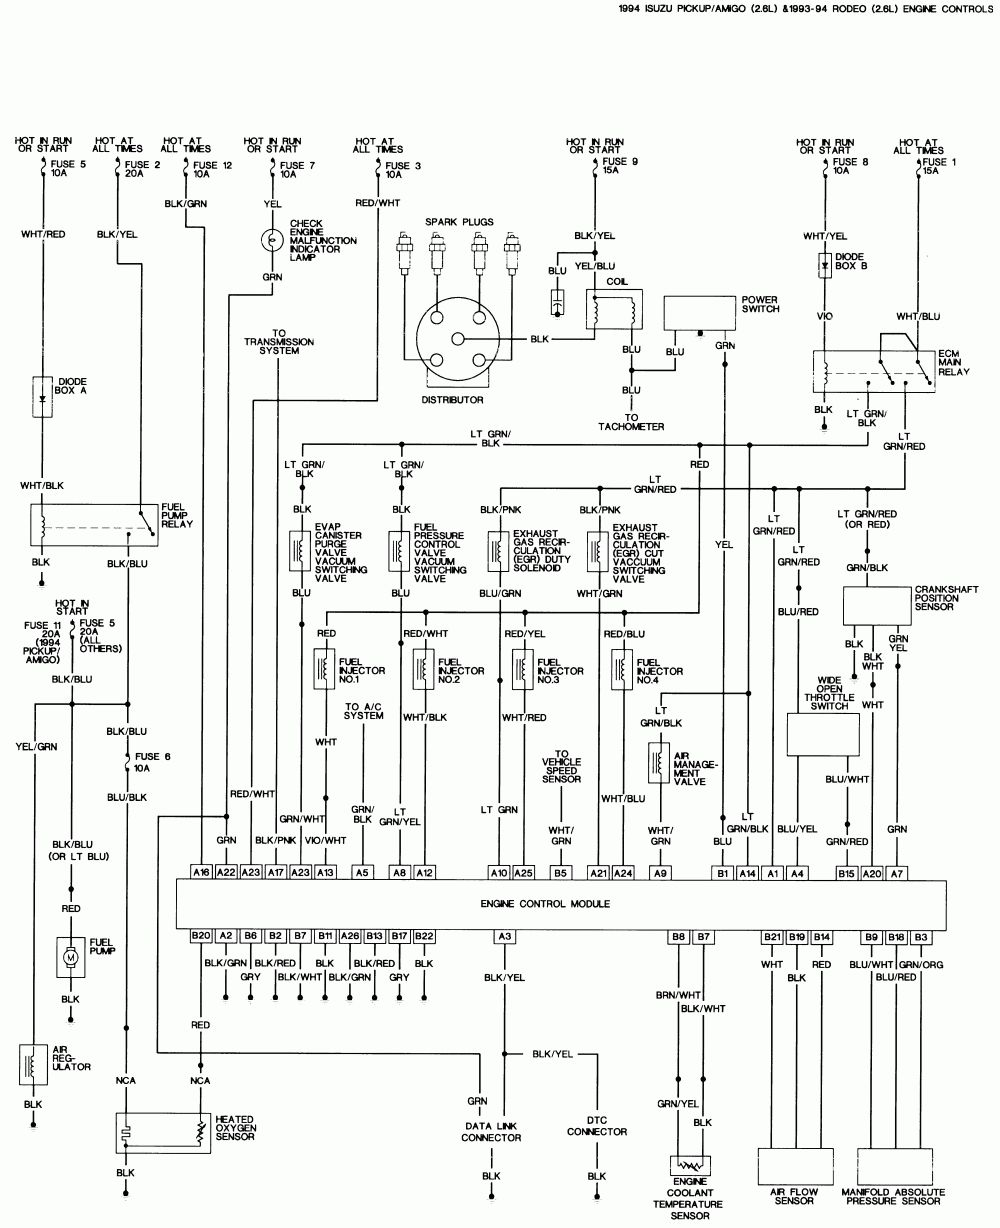 Isuzu Npr Electrical Wiring Diagram | WiringDiagram.org | Electrical wiring  diagram, Honda civic, Honda civic enginePinterest